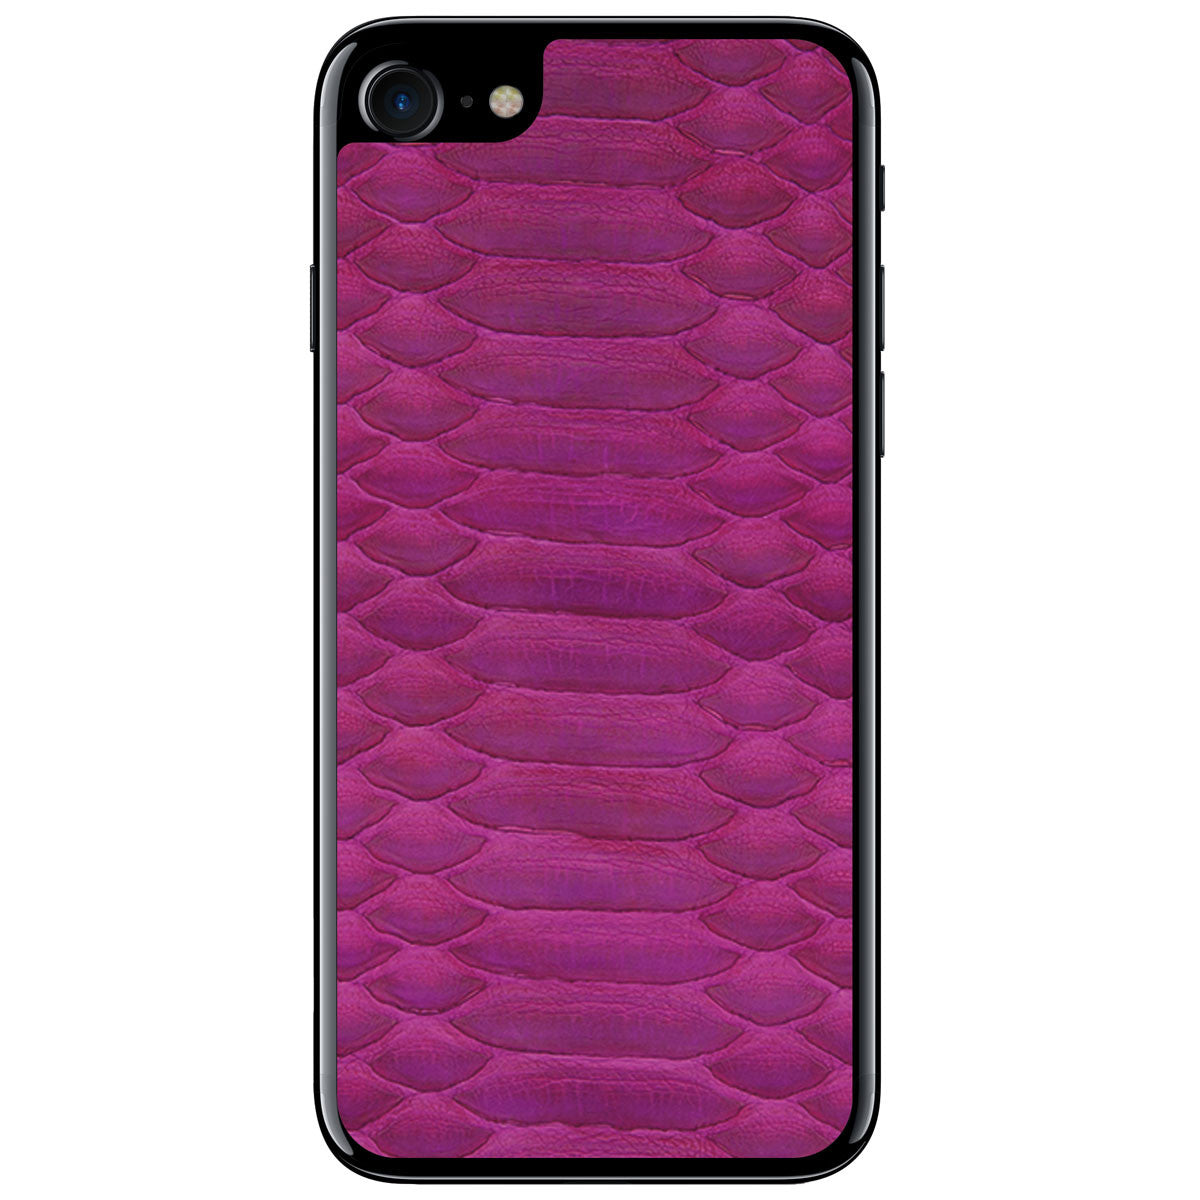 Fuchsia Python iPhone 8 Leather Skin